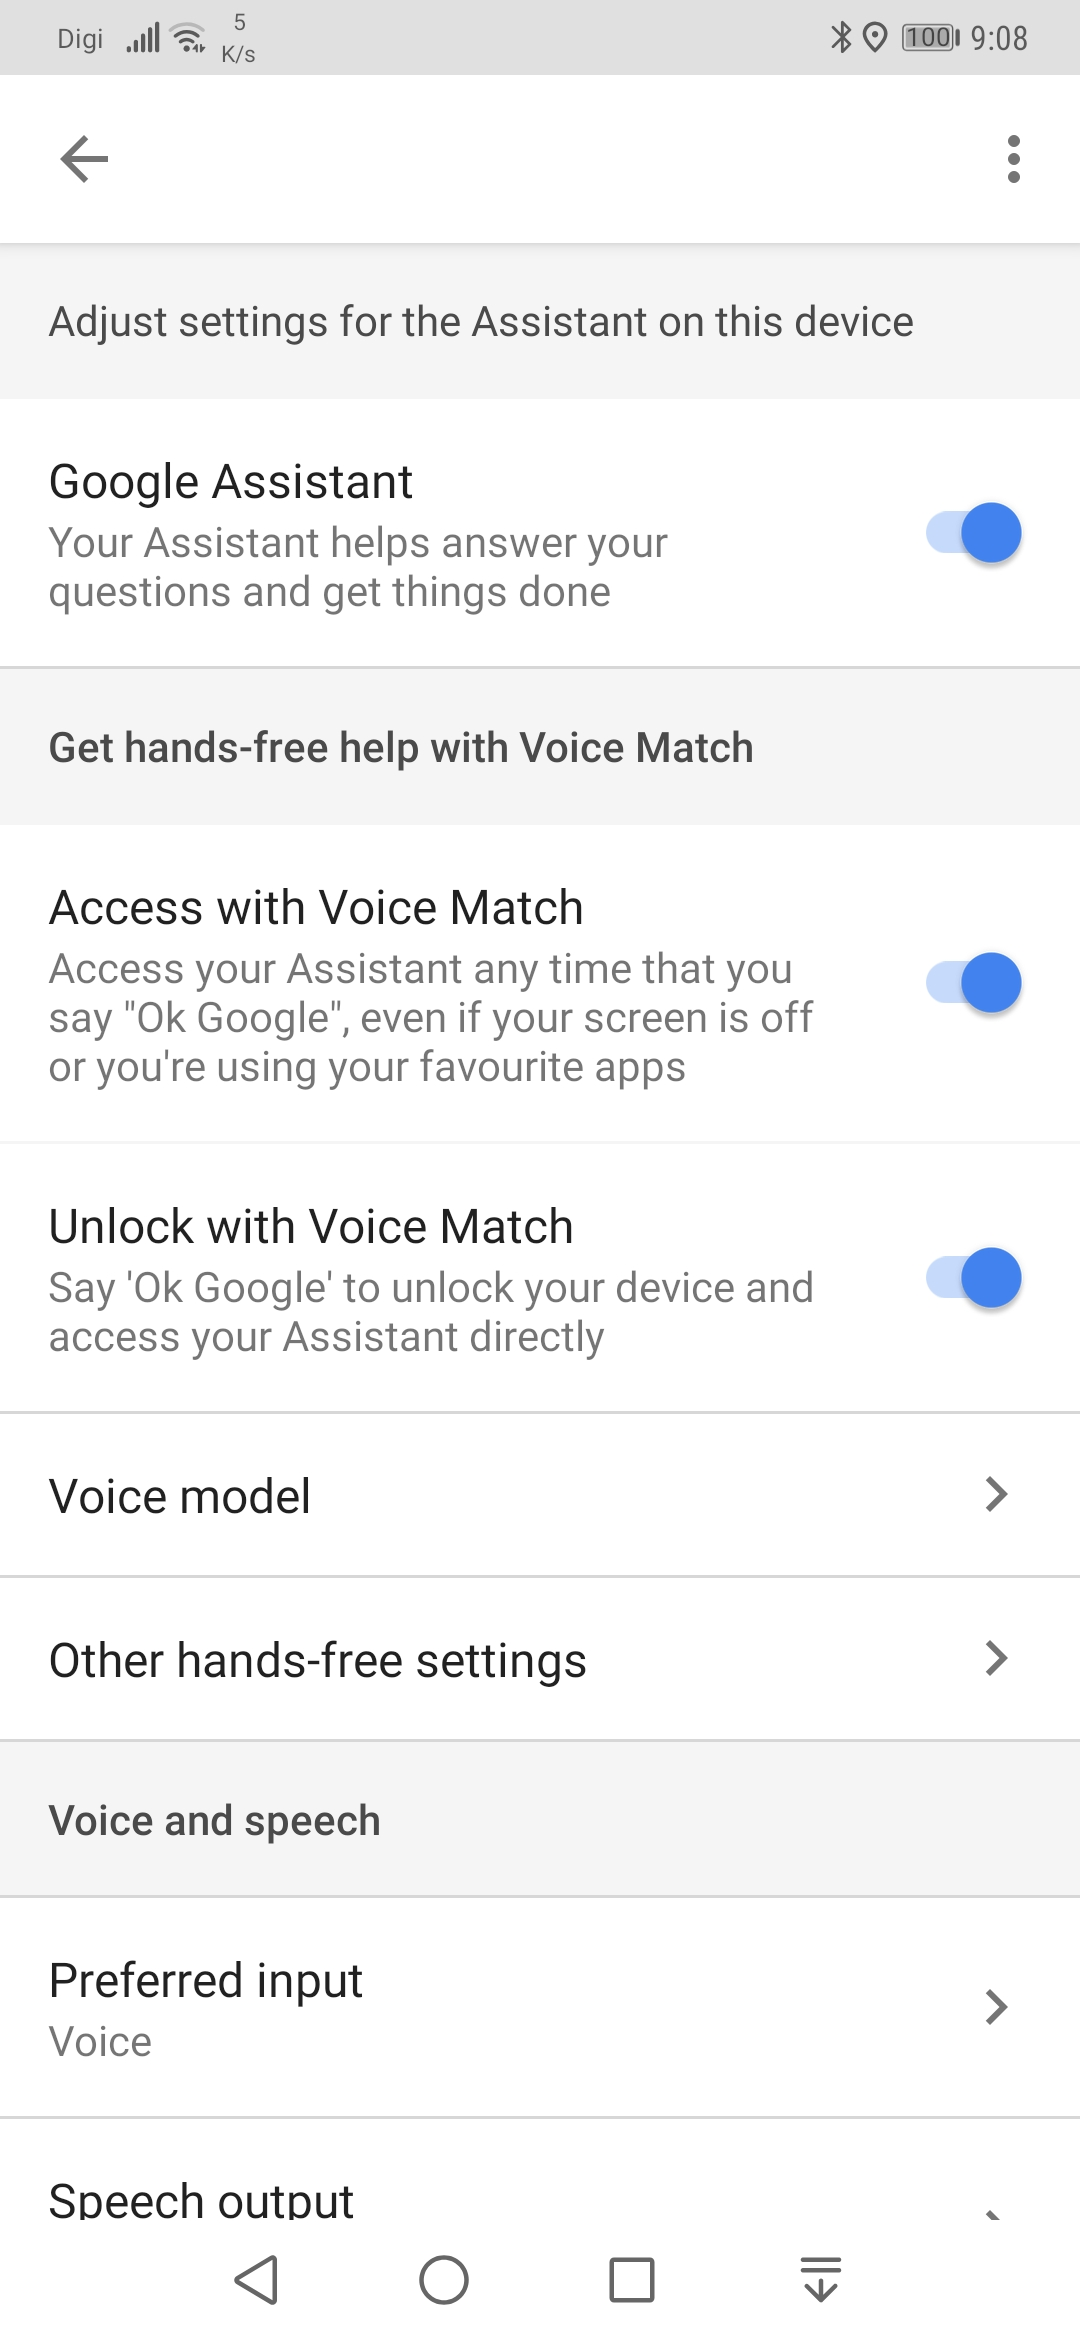 Unlock with Voice is not working in huawei mate 20 pro - Google